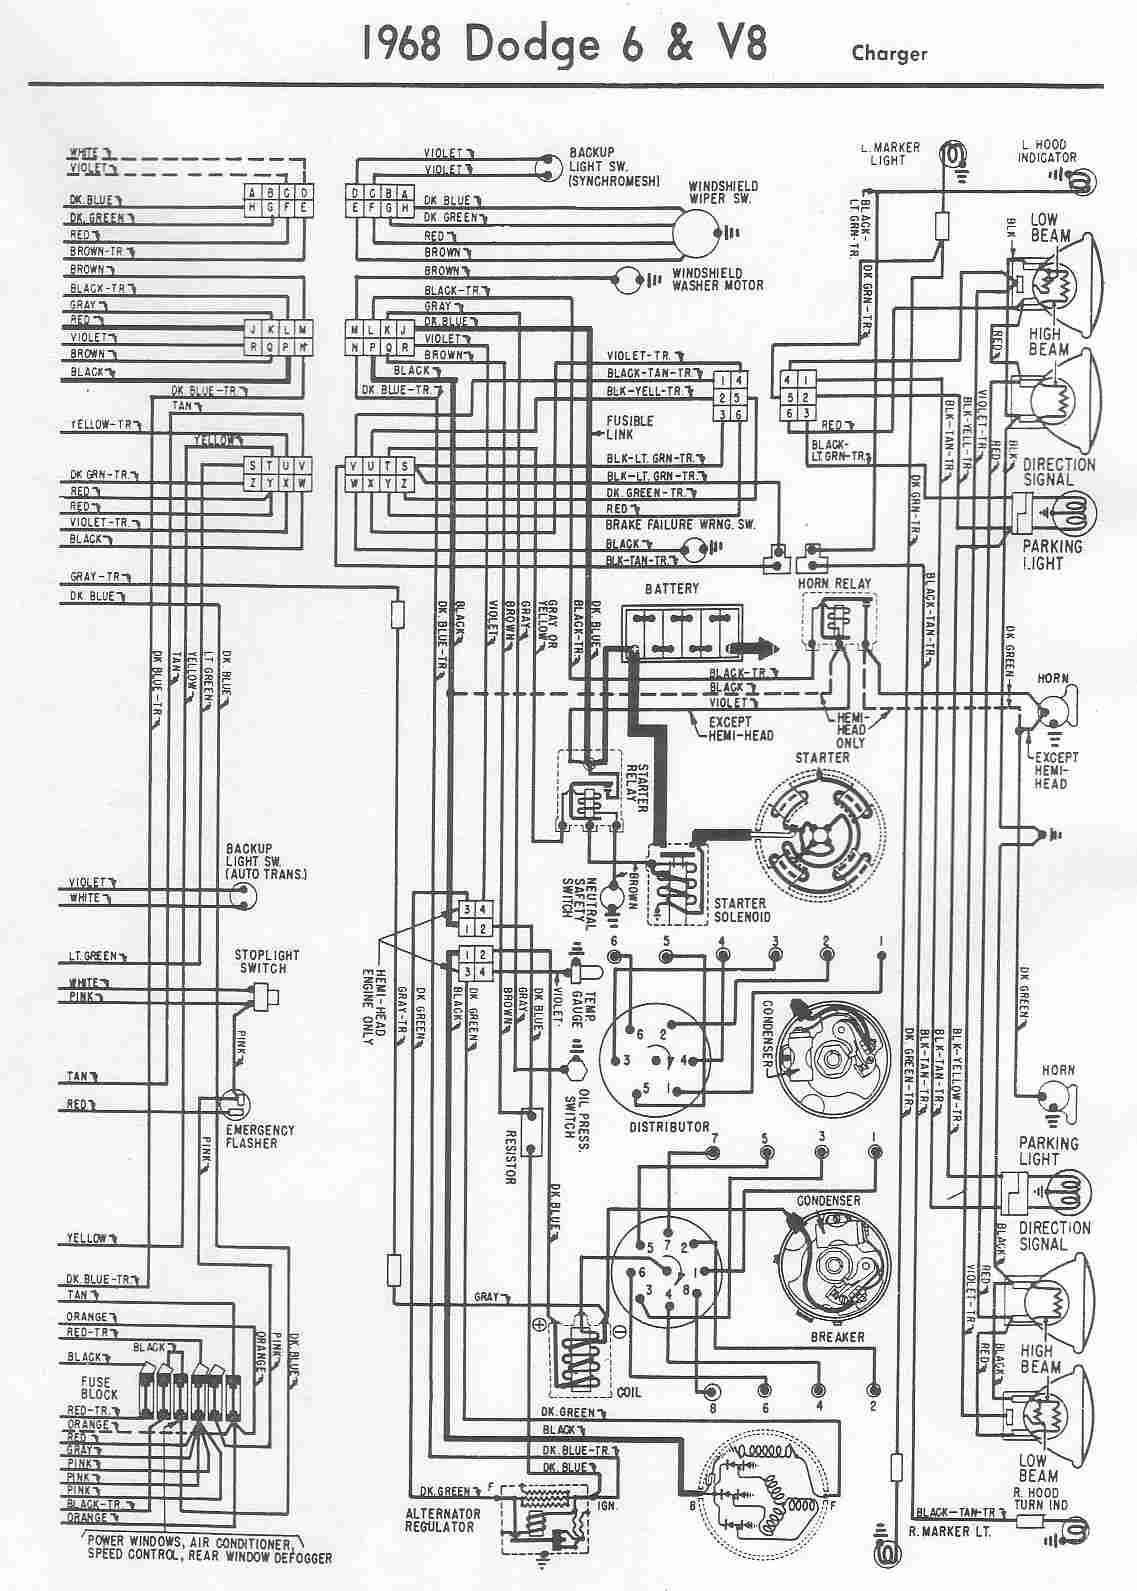 charger electrical wiring diagram of 1968 dodge 6 and v8?t=1508404771 dodge car manuals, wiring diagrams pdf & fault codes 1970 dodge coronet wiring diagram at gsmportal.co